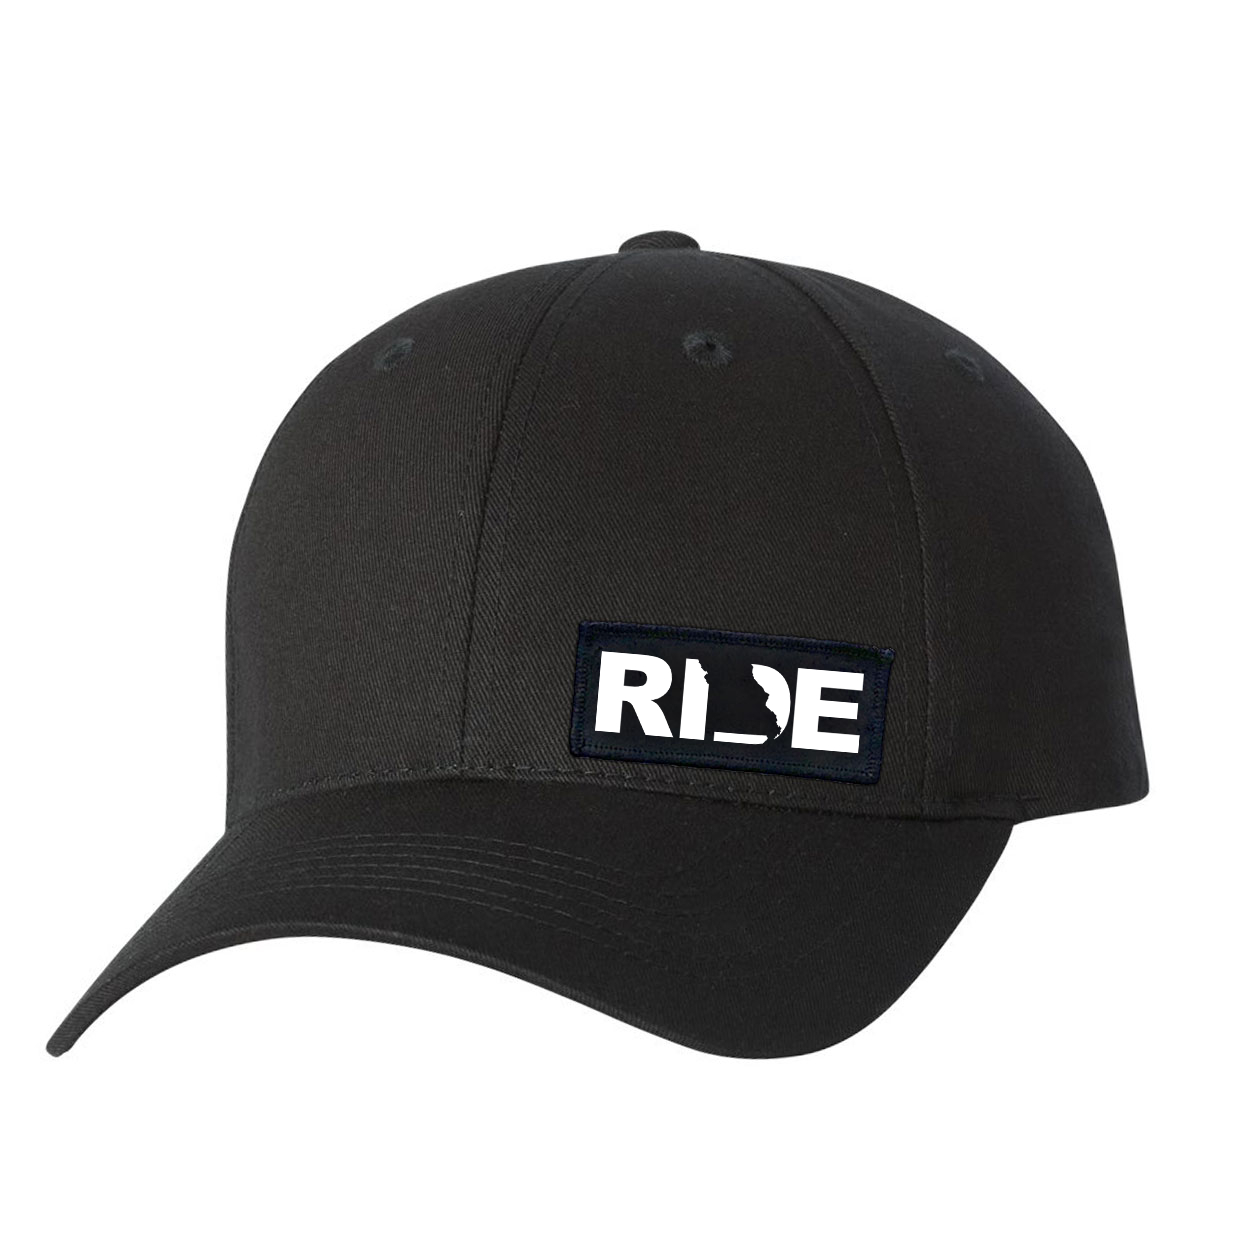 Ride Missouri Night Out Youth Woven Patch Hat Black (White Logo)